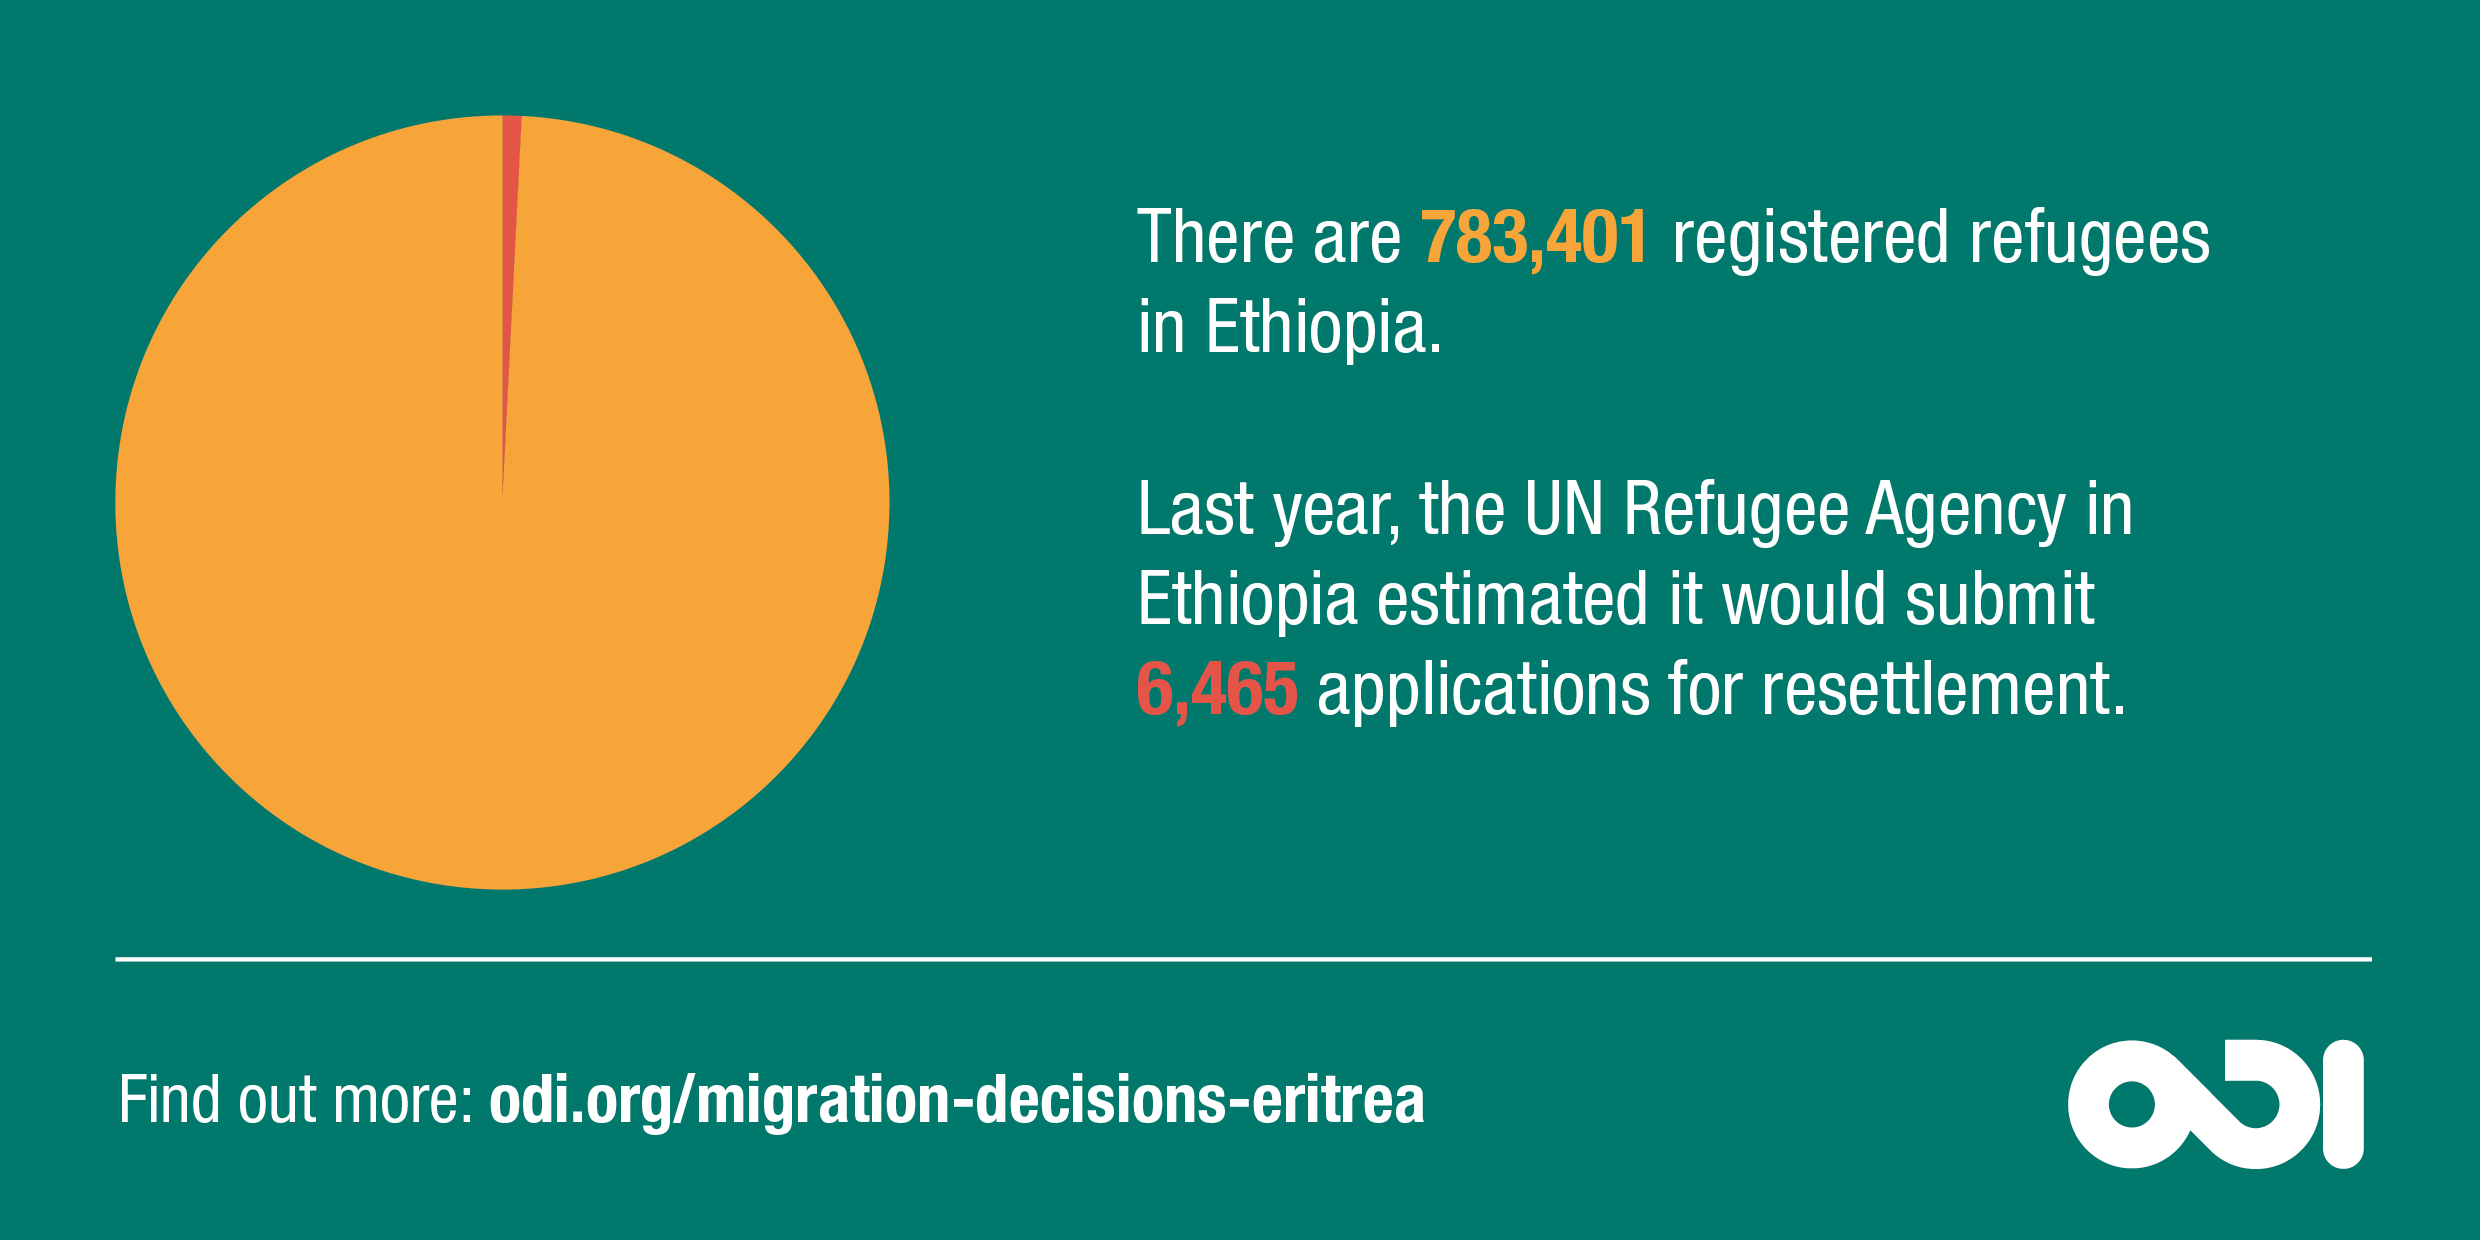 Infographic: only 0.8% of the nearly 800,000 refugees in Ethiopia were submitted for resettlement last year